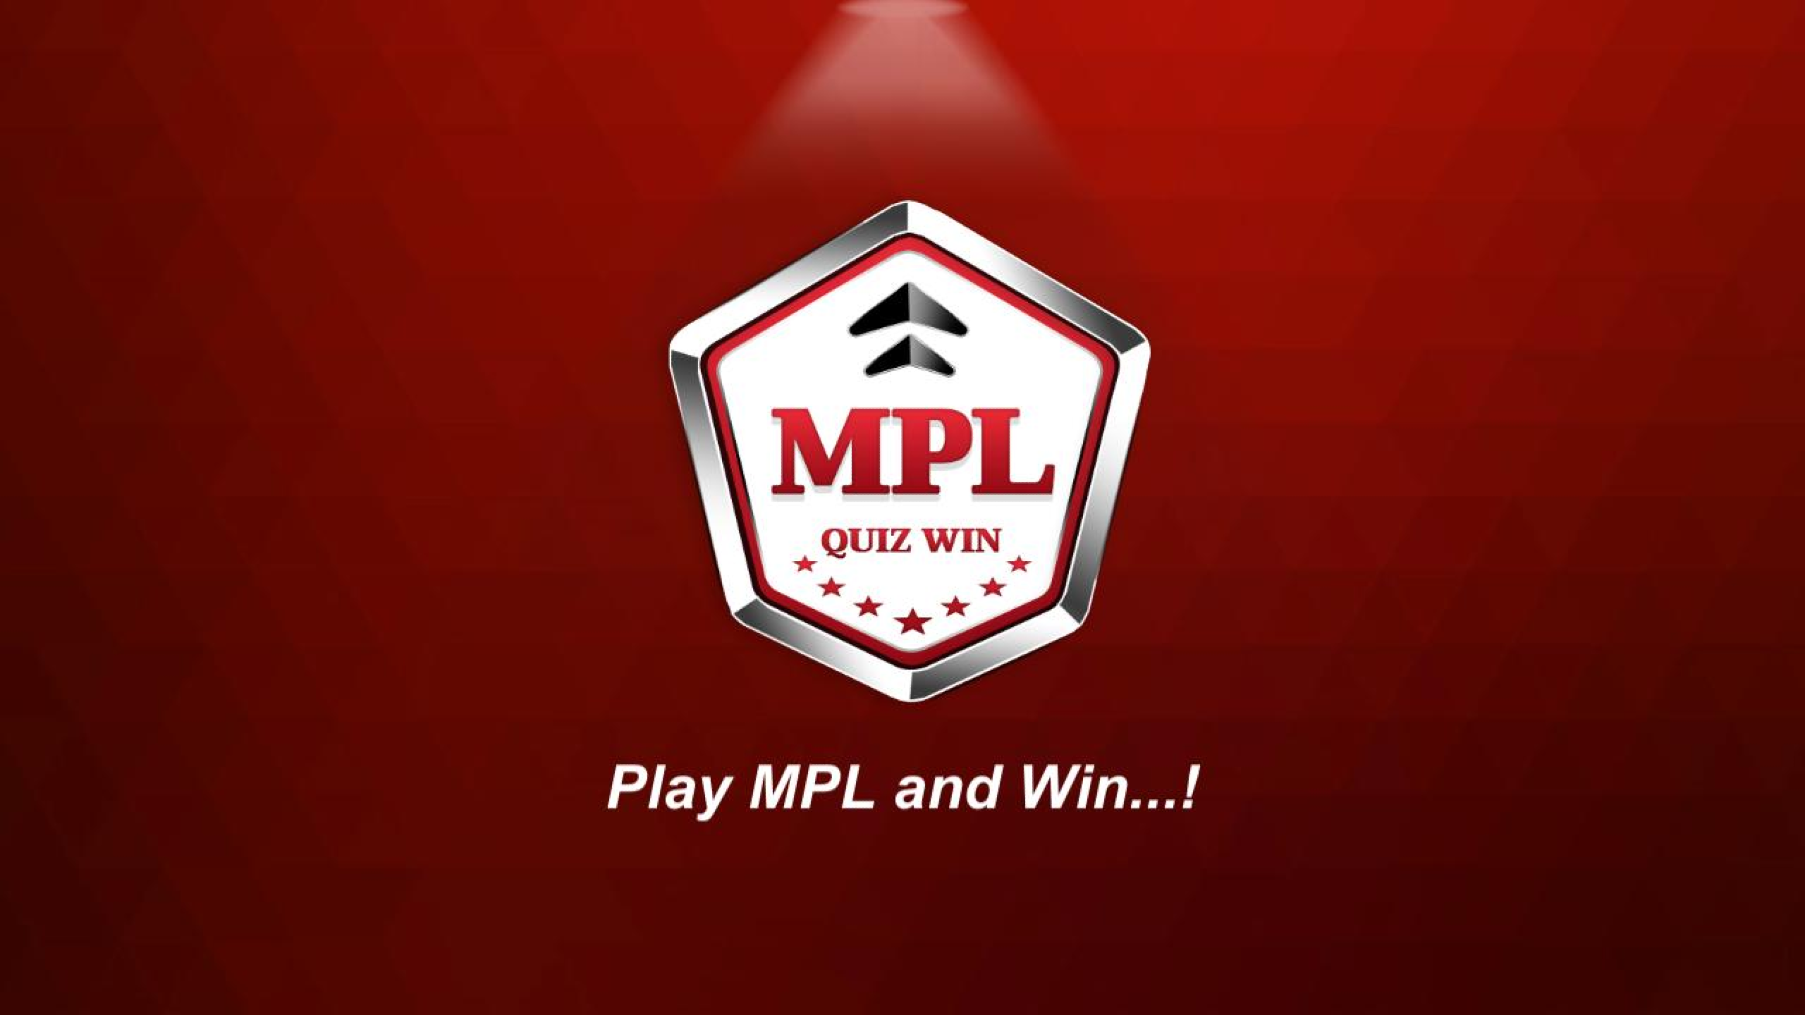 MPL-Connotes-GaminG-POST